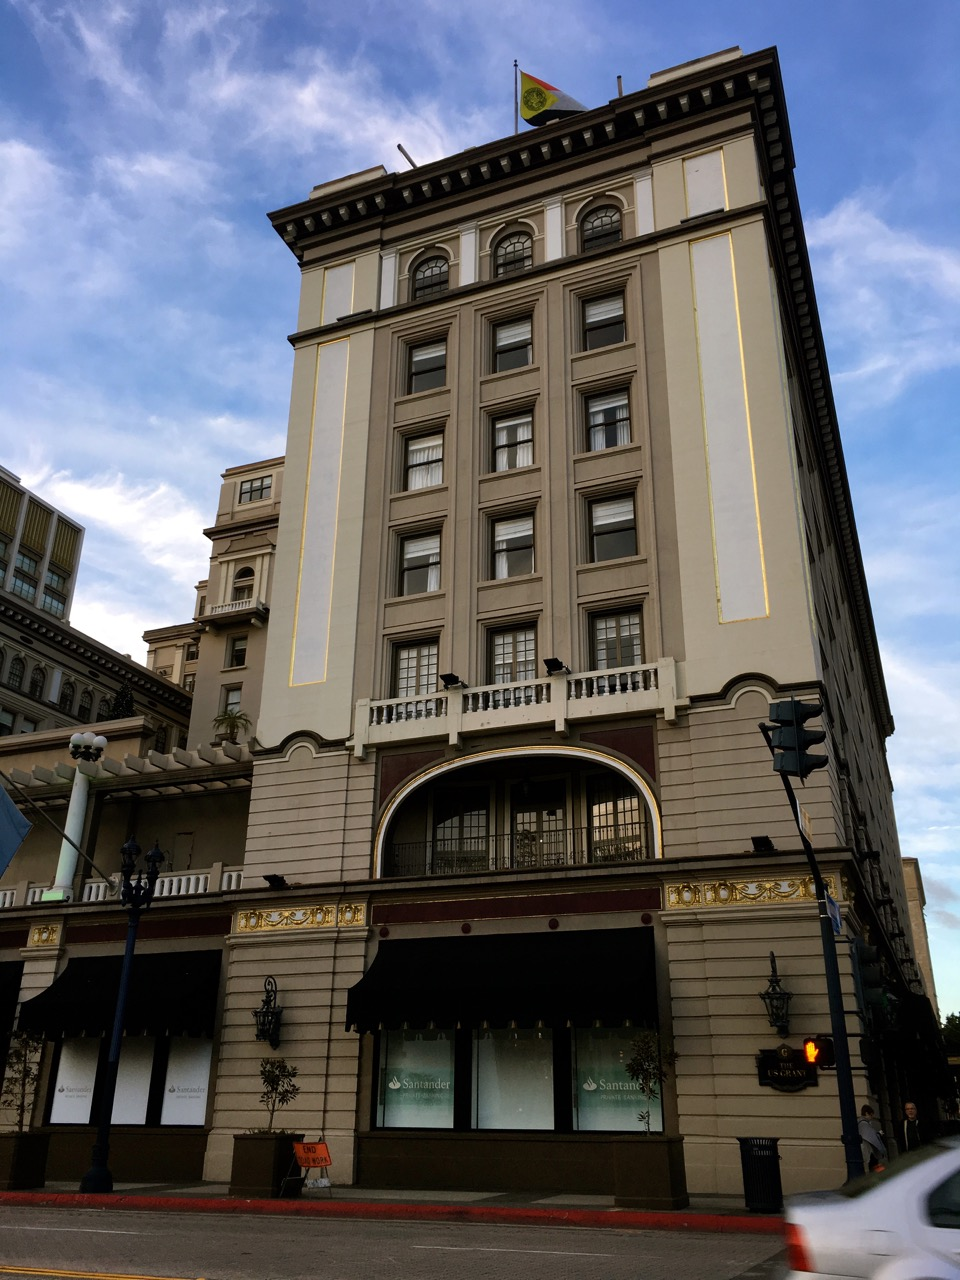 US Grant Hotel in San Diego's Gaslamp District